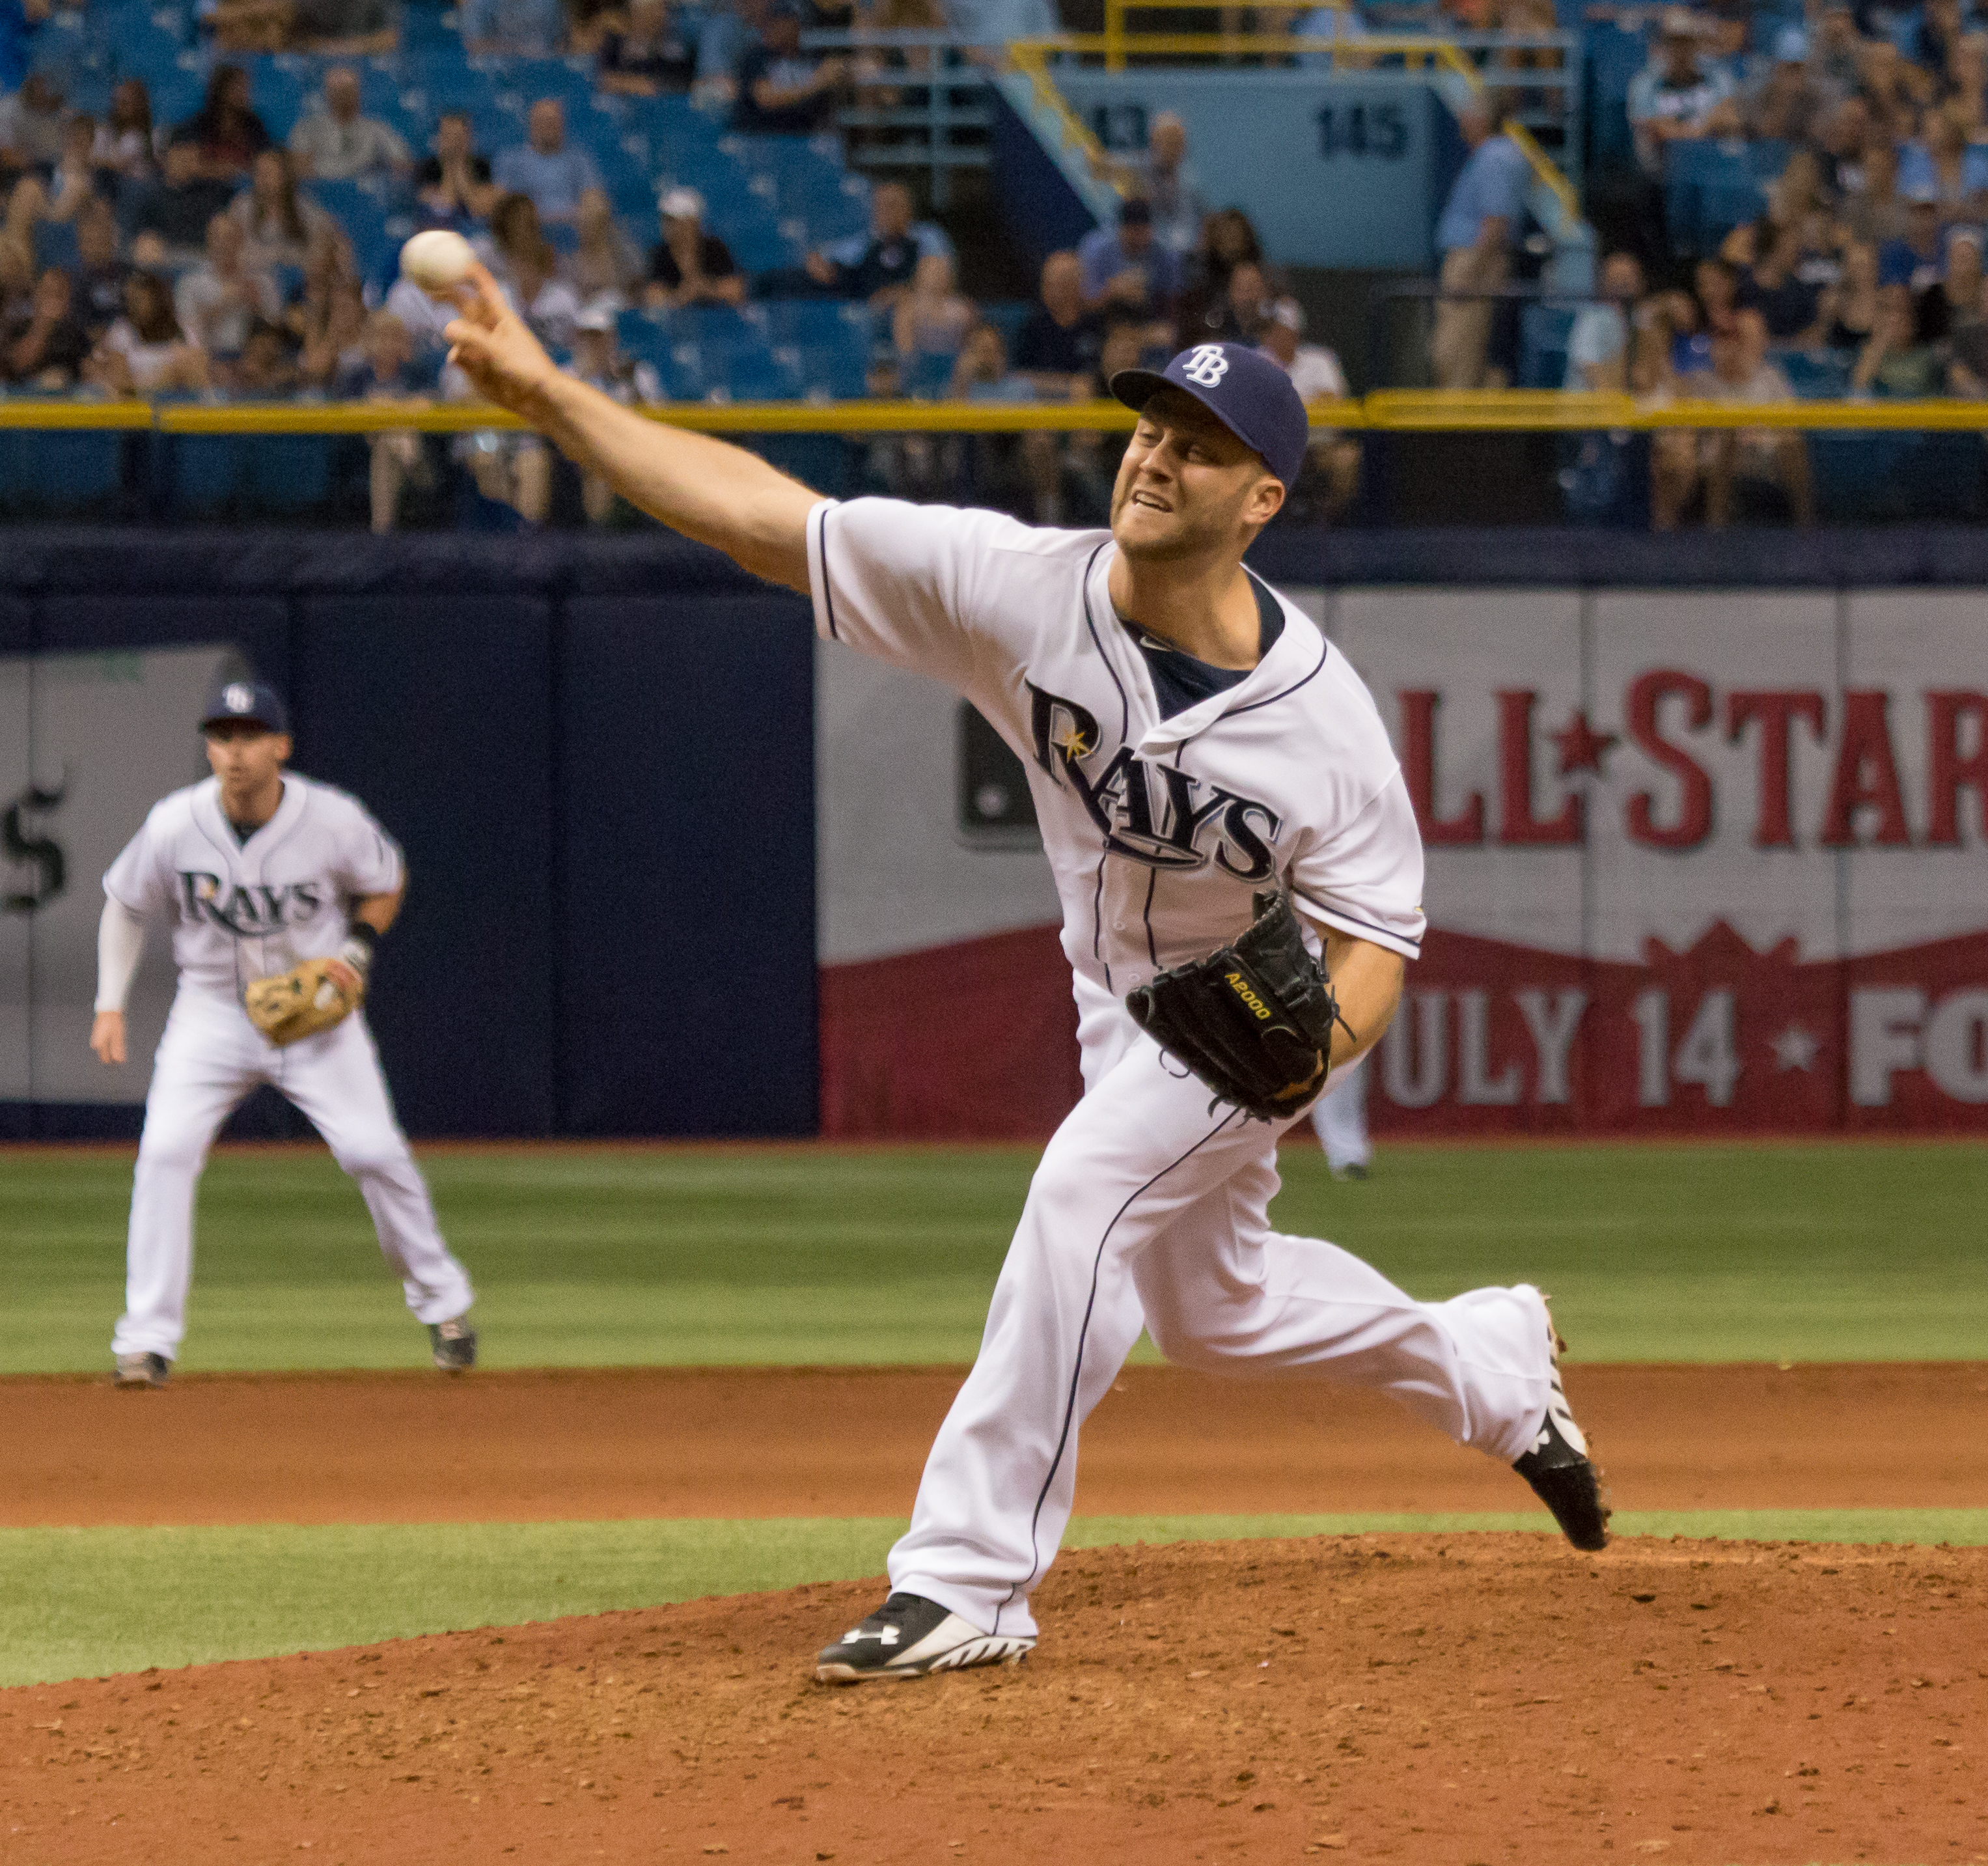 Boxberger has gone through a rough patch with Rays lately./JEFFREY S. KING